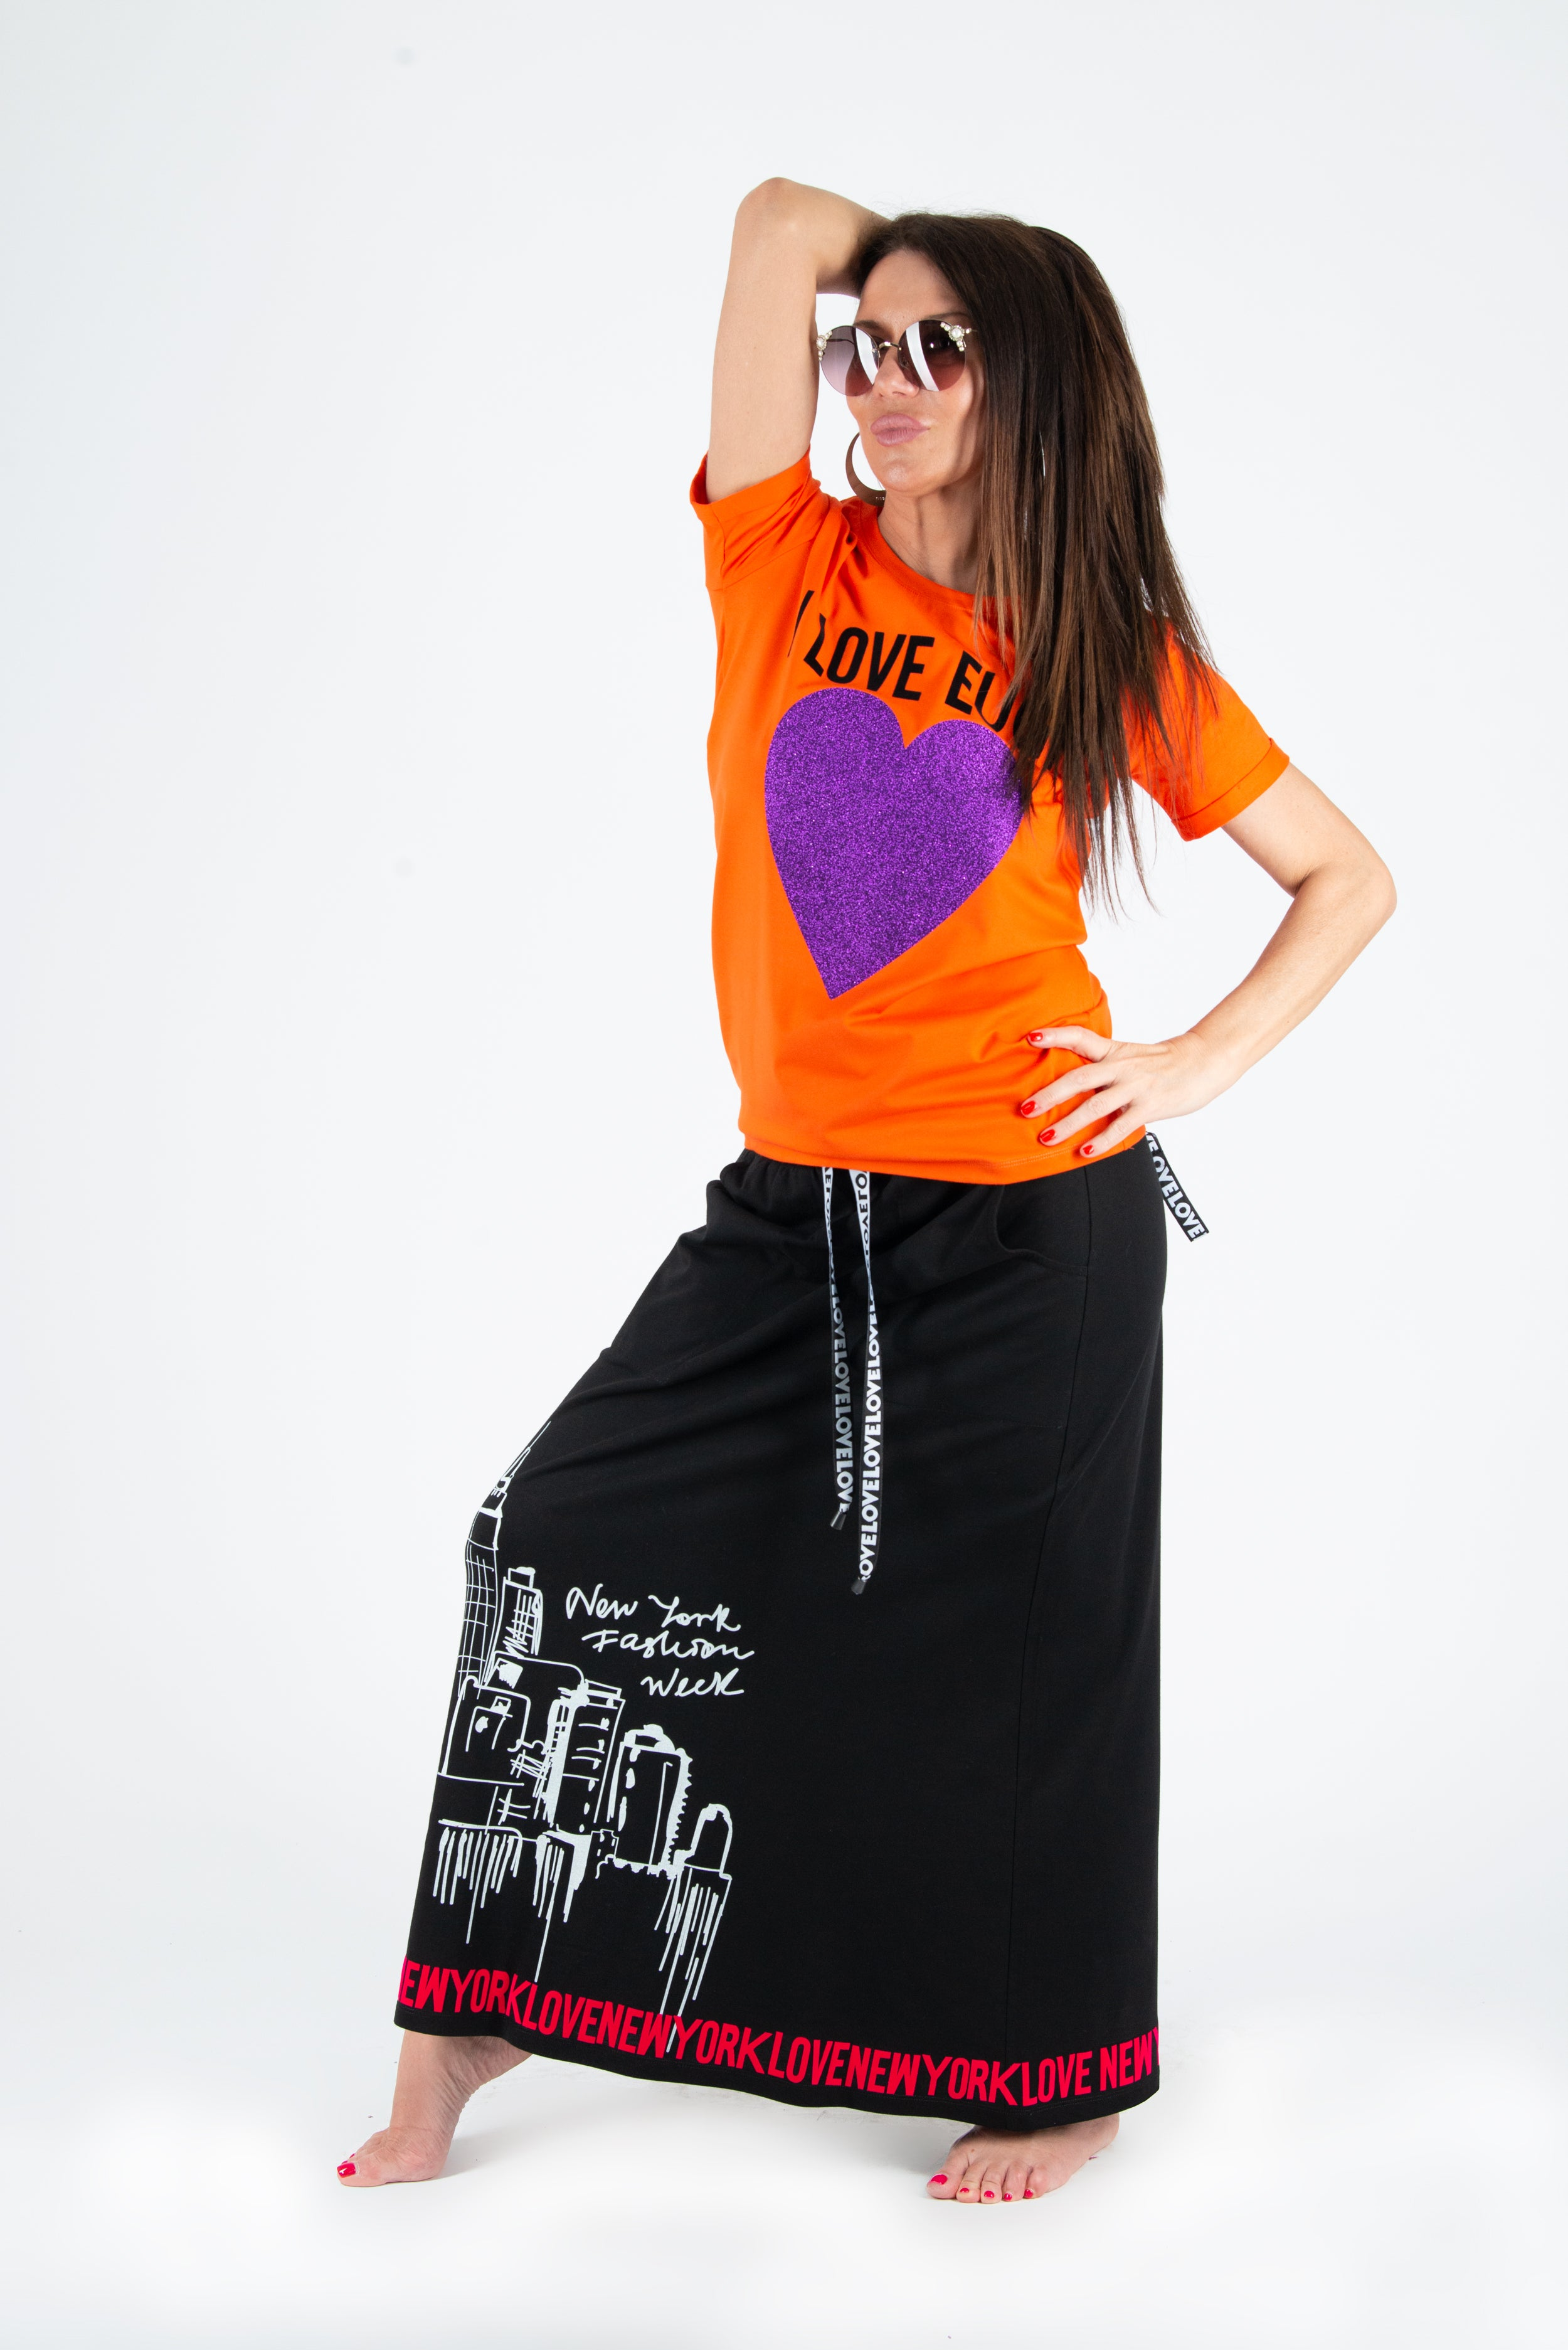 Orange Printed Two pieces cotton outfit, skirt and tee